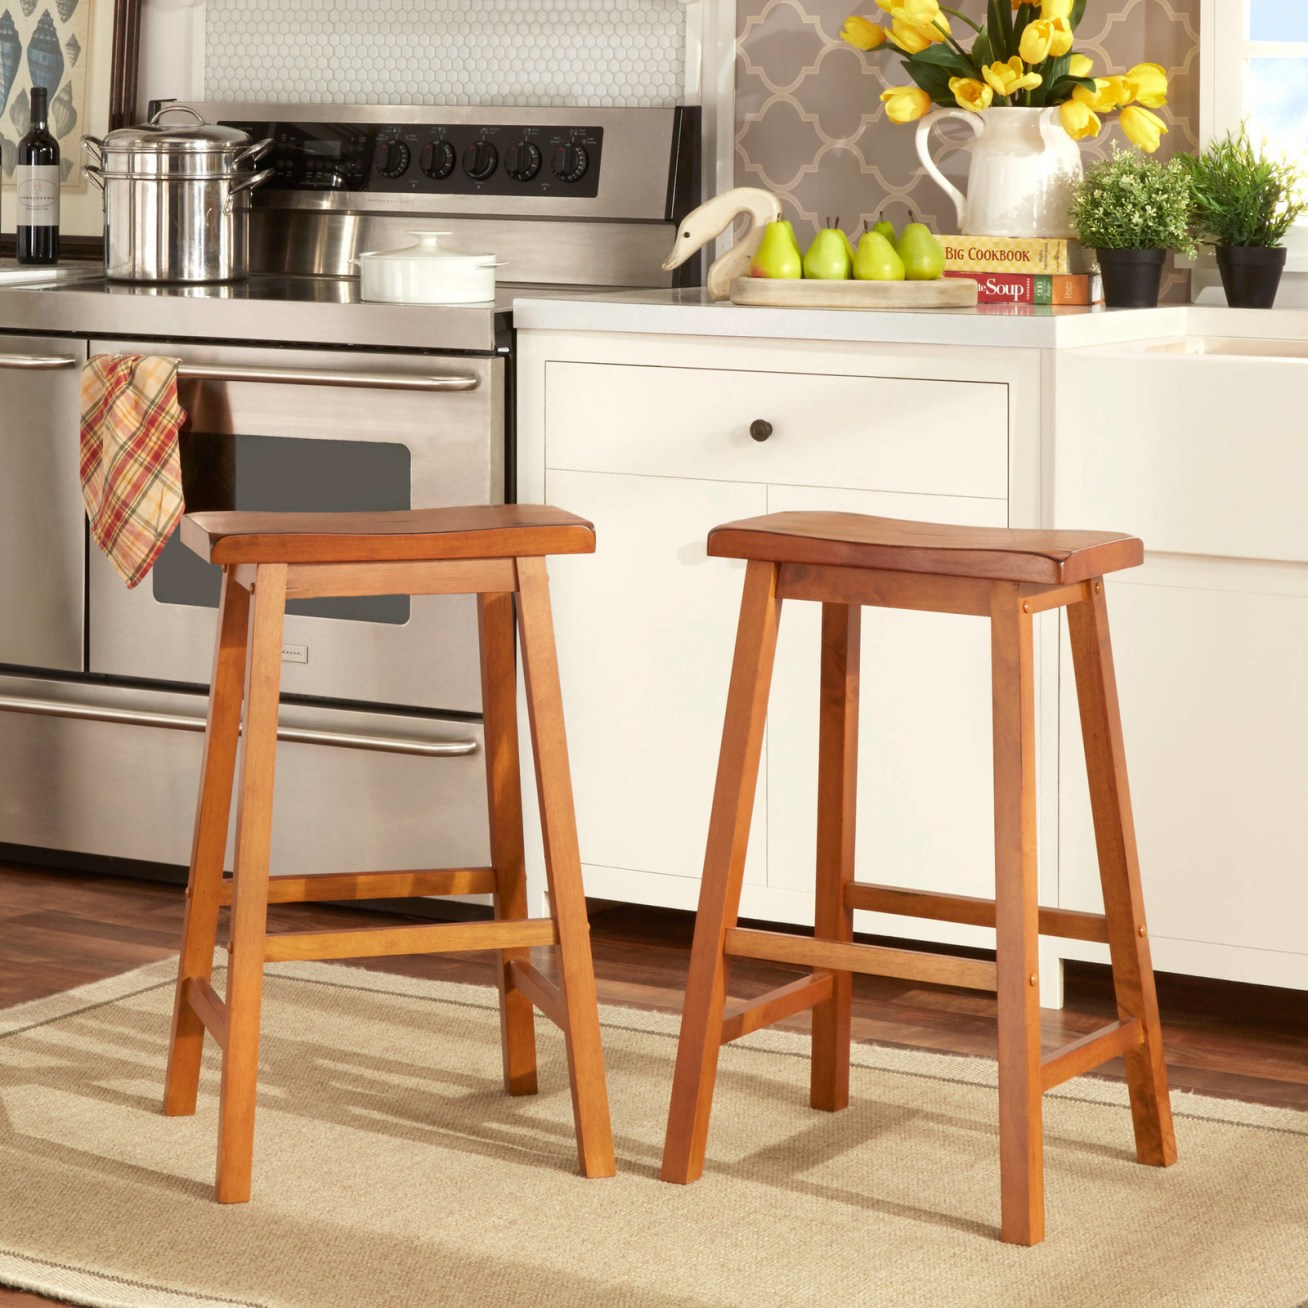 "Promising review: ""I am very happy with these stools! They were quite simple to assemble with the tools provided — it took me less than 30 minutes. They are solid wood, very sturdy, and they look great at my kitchen breakfast bar. The seats are wide enough to be comfortable. You just can't beat these stools for the price! I saw them on other sites for  each and you had to pay shipping on those, too. The stools arrived a week before the estimated delivery. —DavenportJPPrice: .46+ (available in three sizes)"